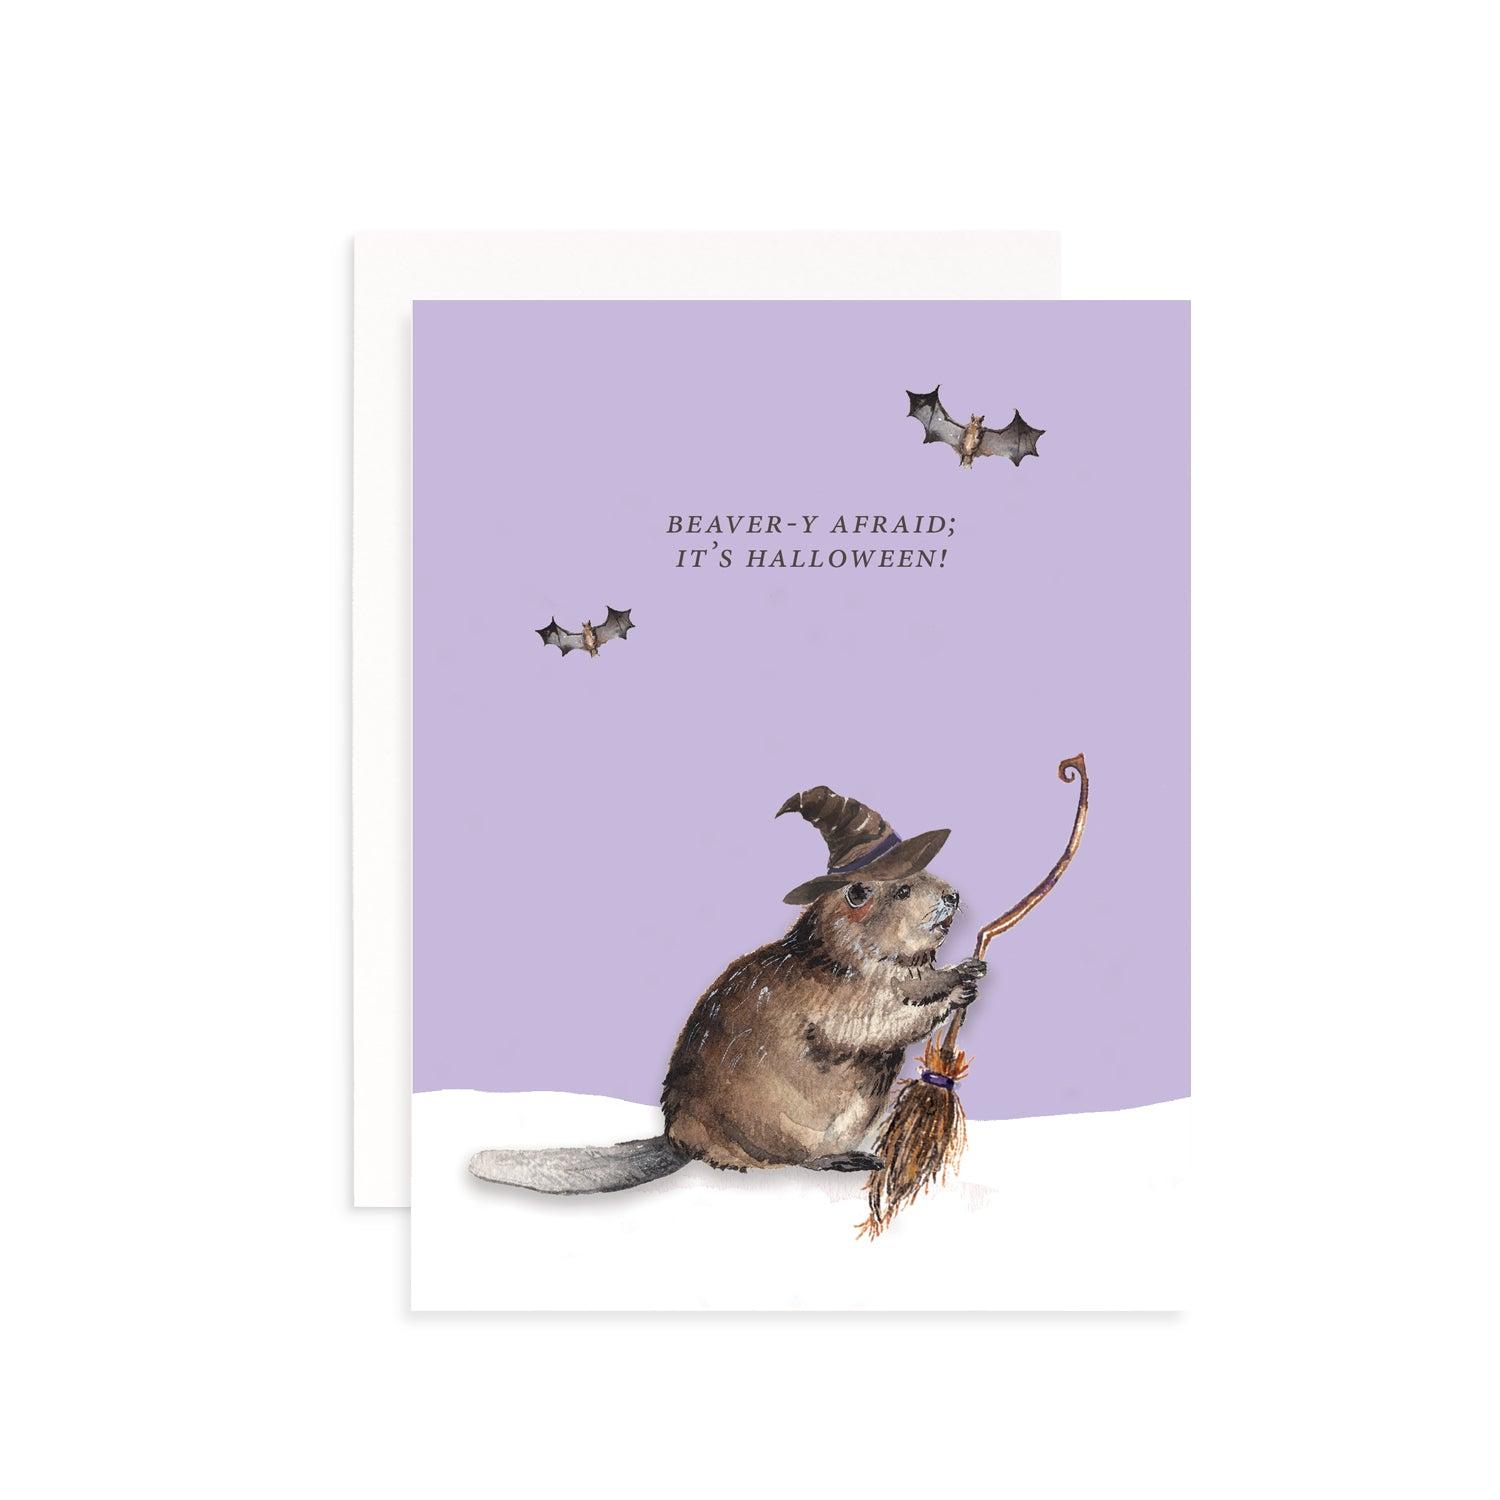 Beaver-y Afraid; It's Halloween! Greeting Card